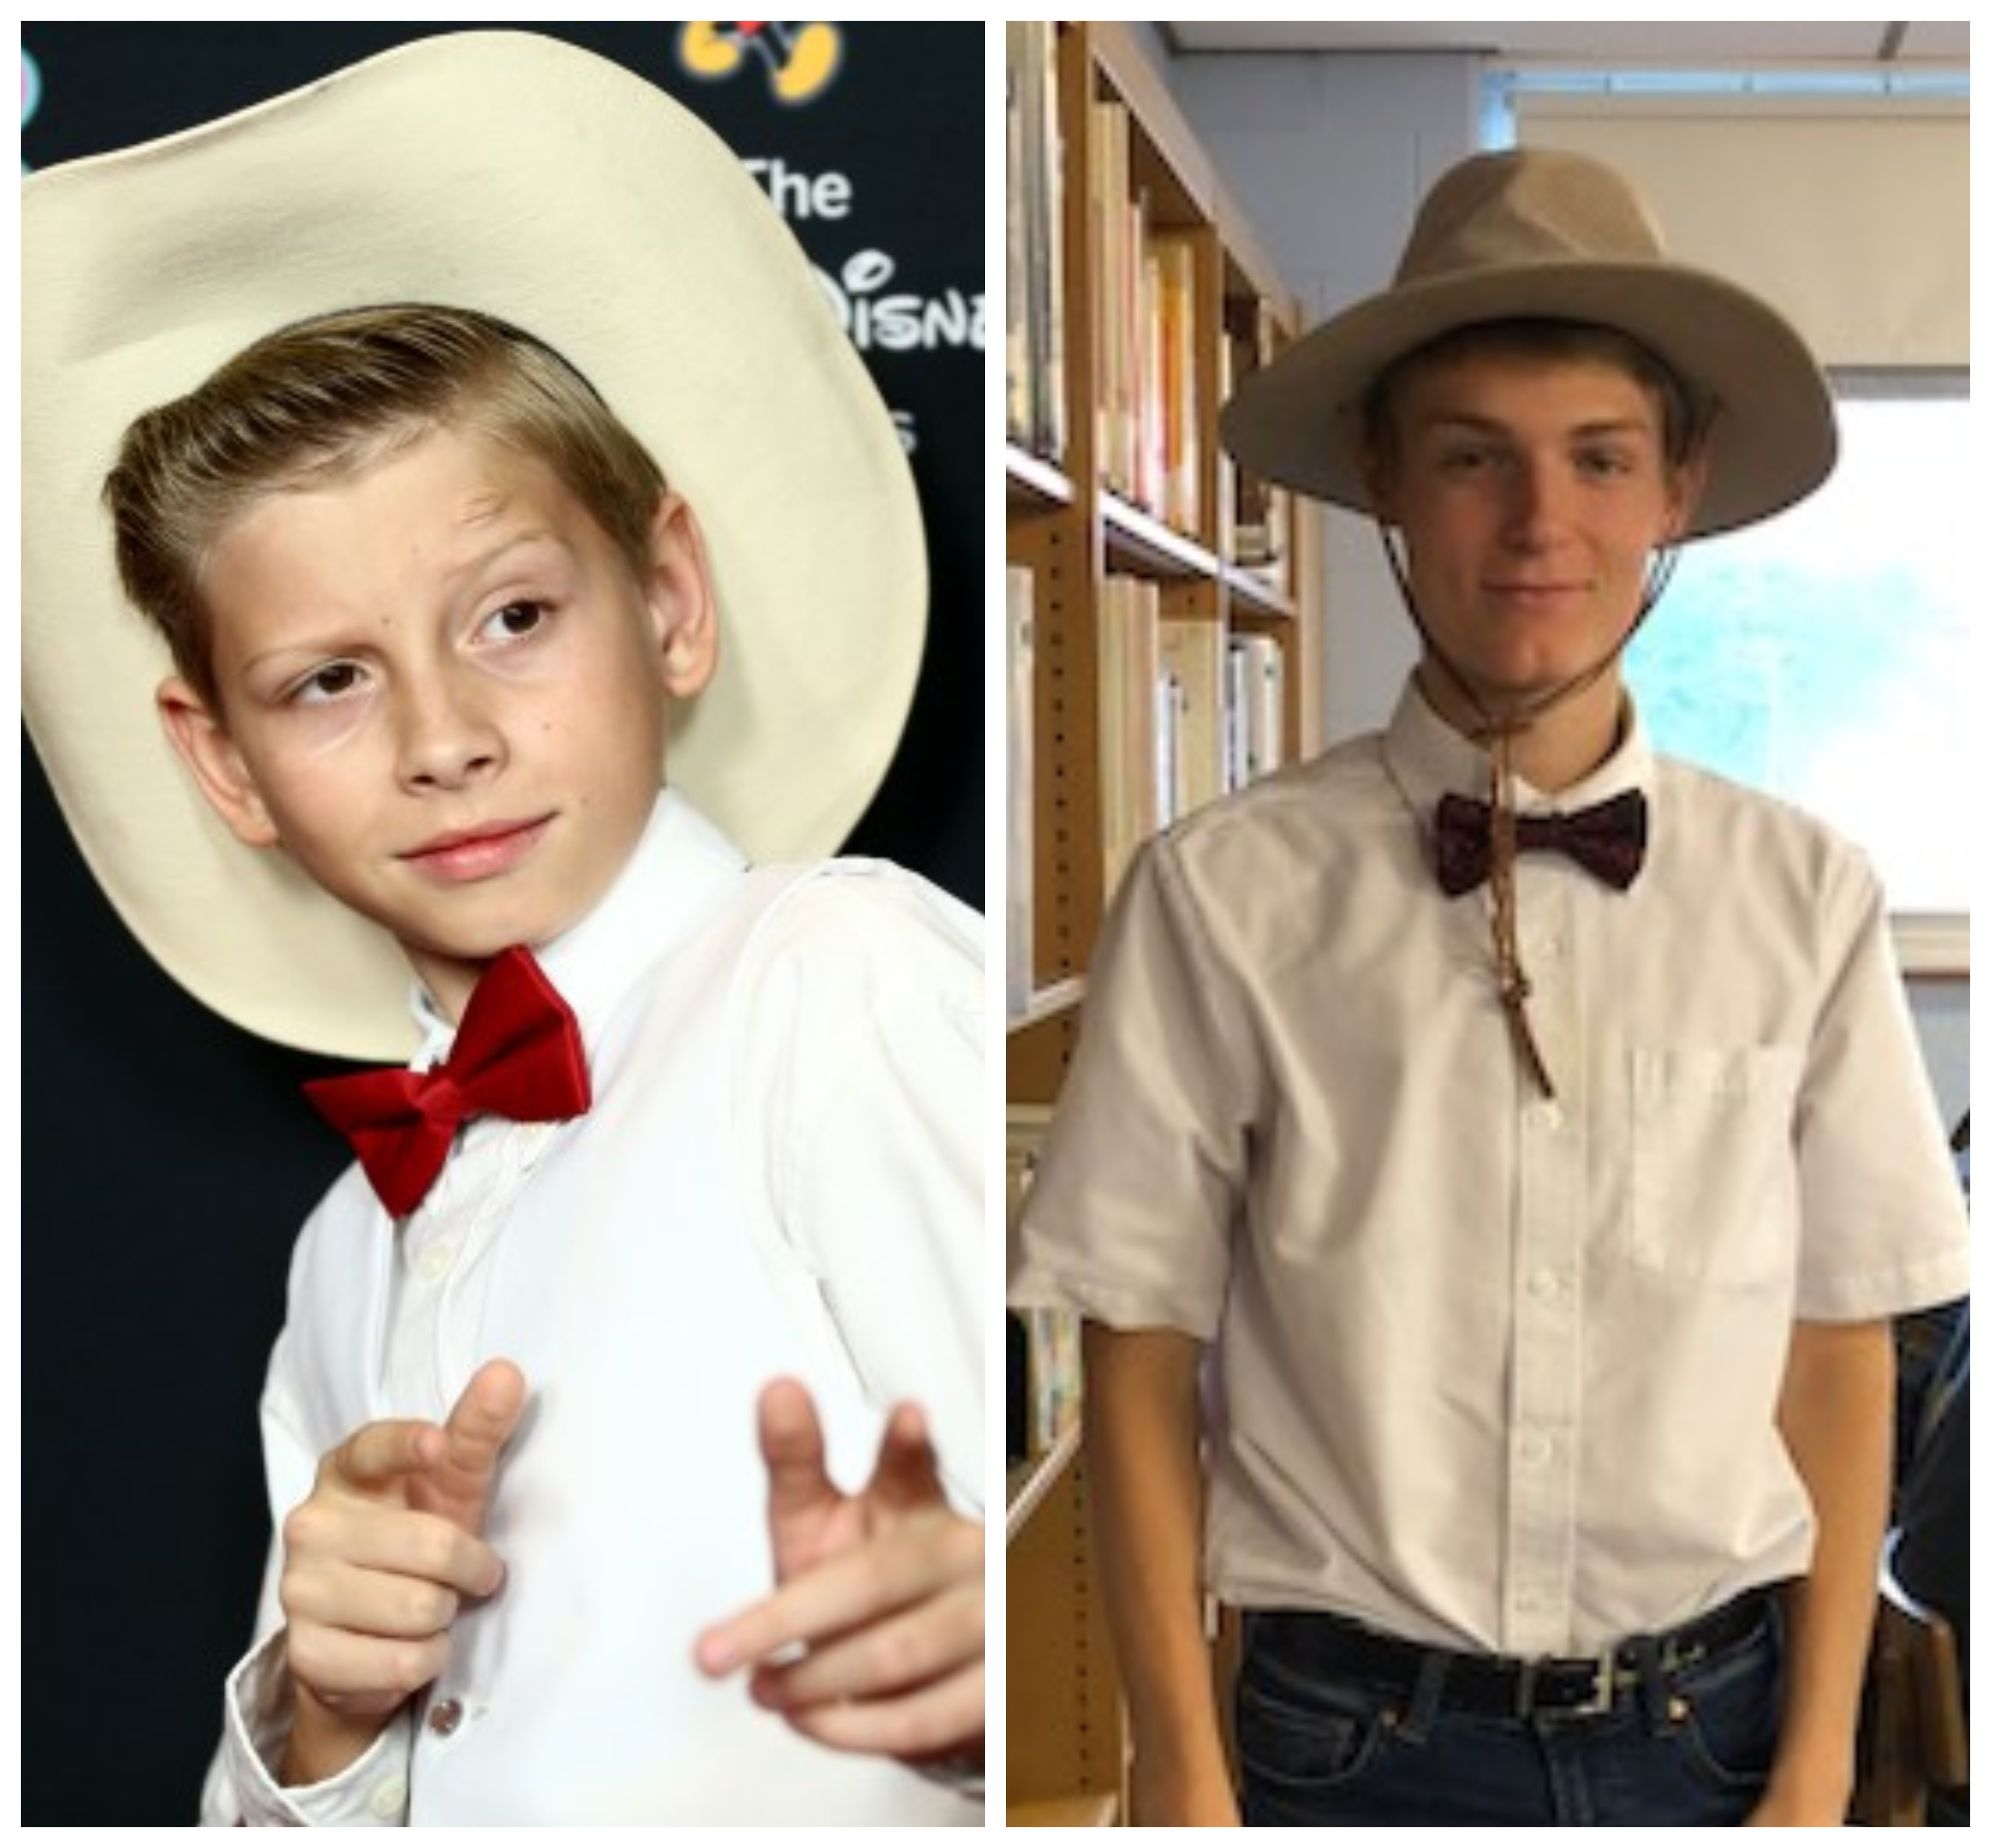 Students celebrate \u201cMeme Day\u201d as part of Homecoming Spirit